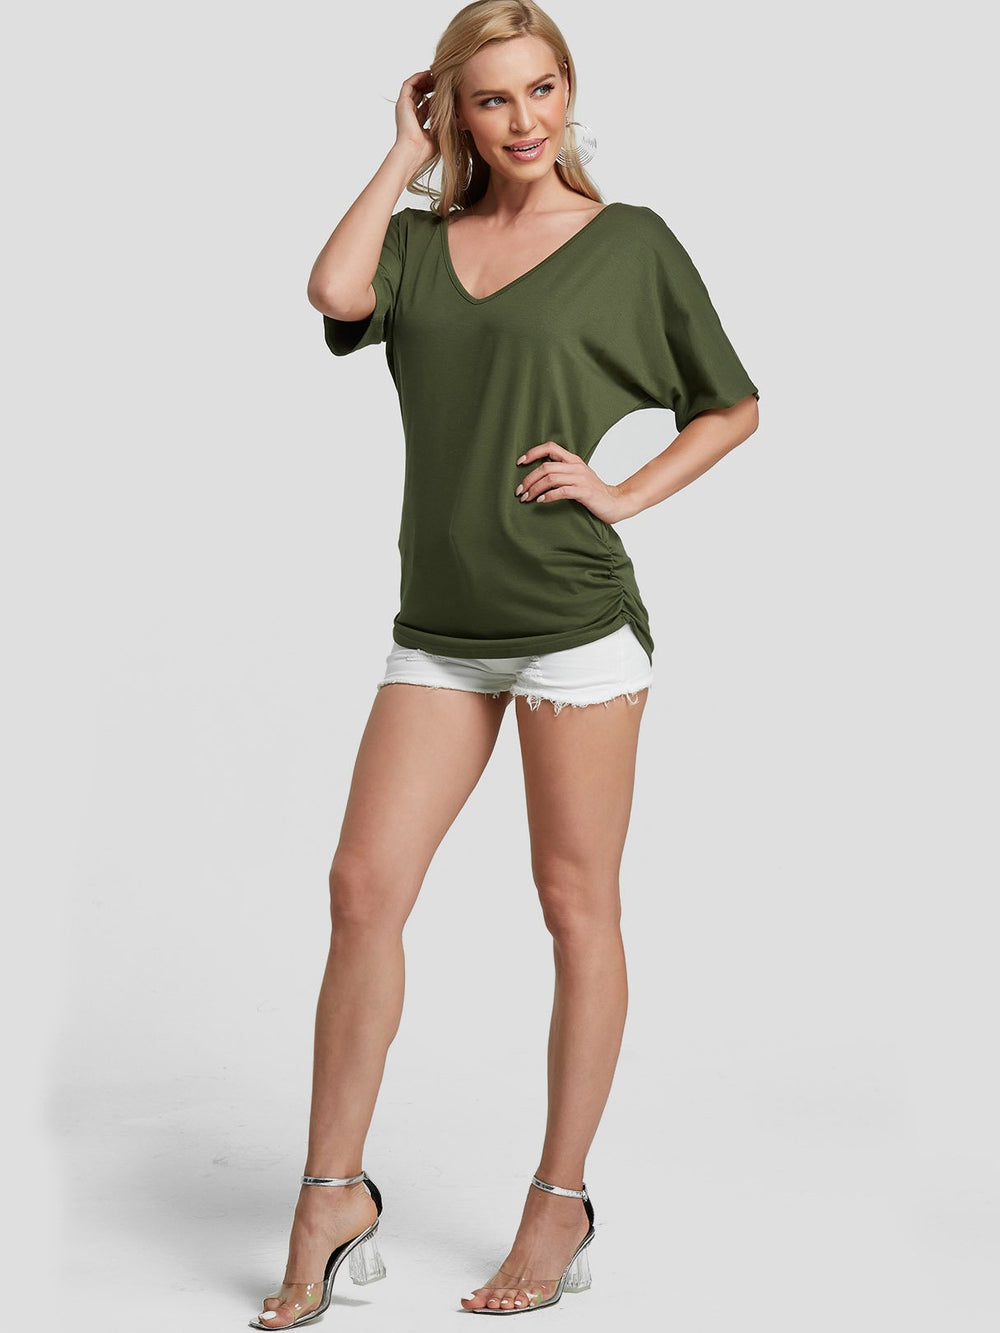 Womens Army Green T-Shirts